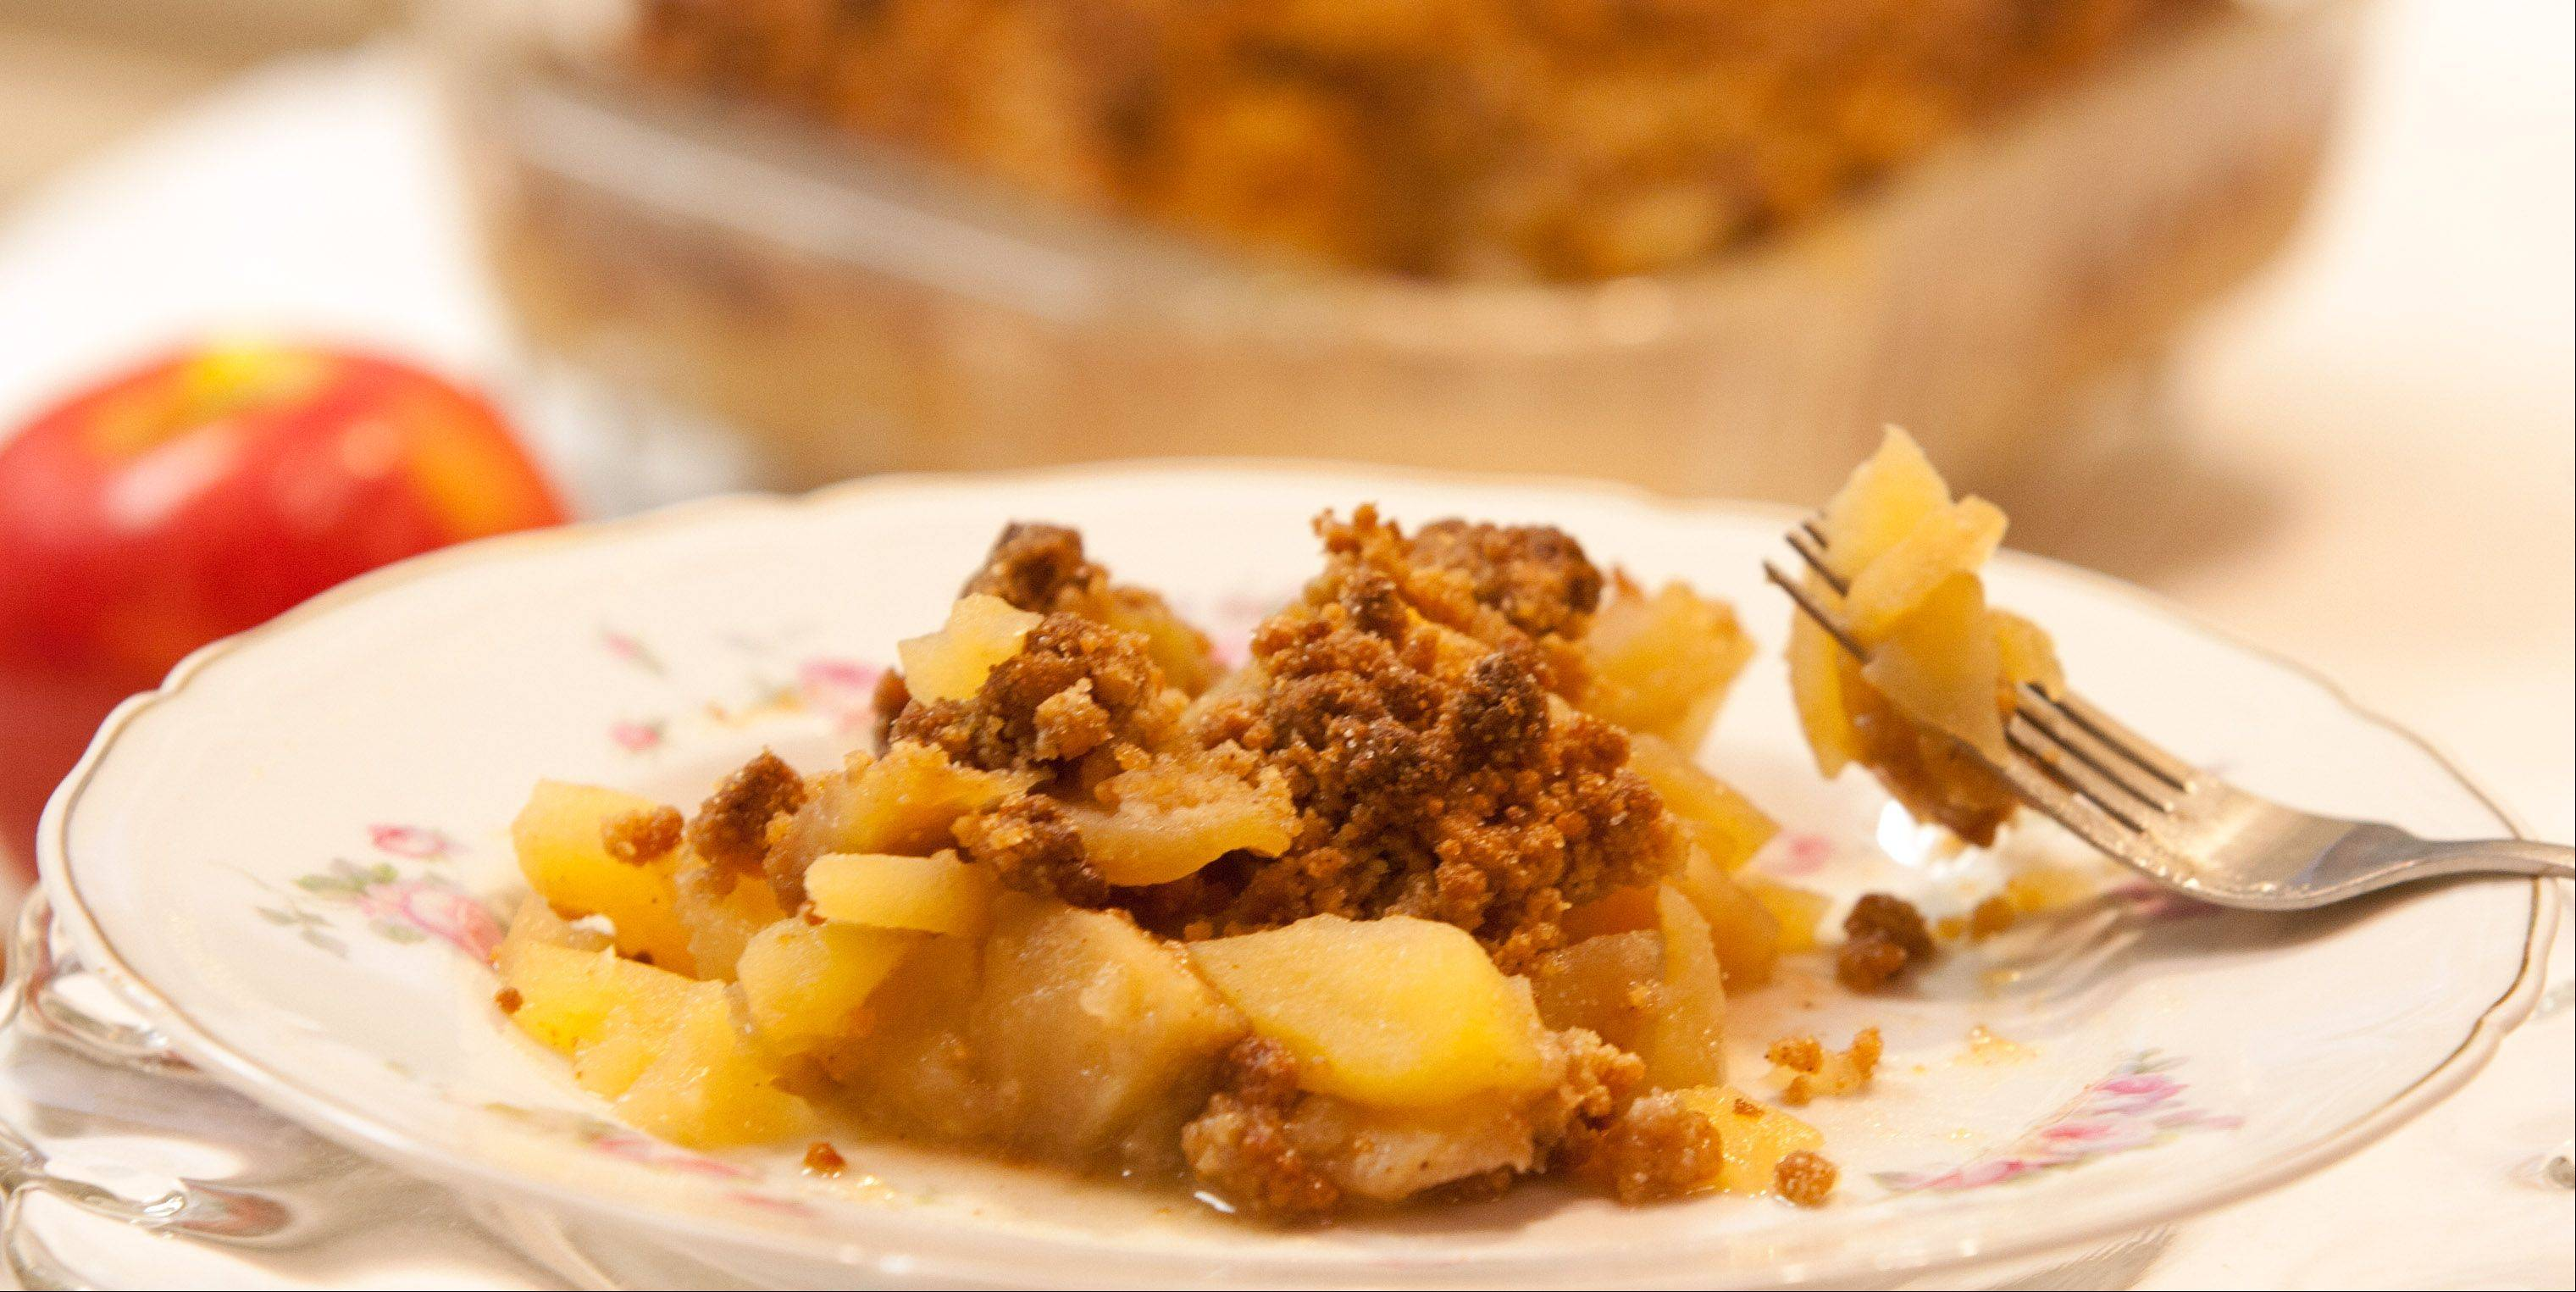 Annie Overboe�s gluten-free apple crisp relies on almond and coconut flours to give the topping structure.